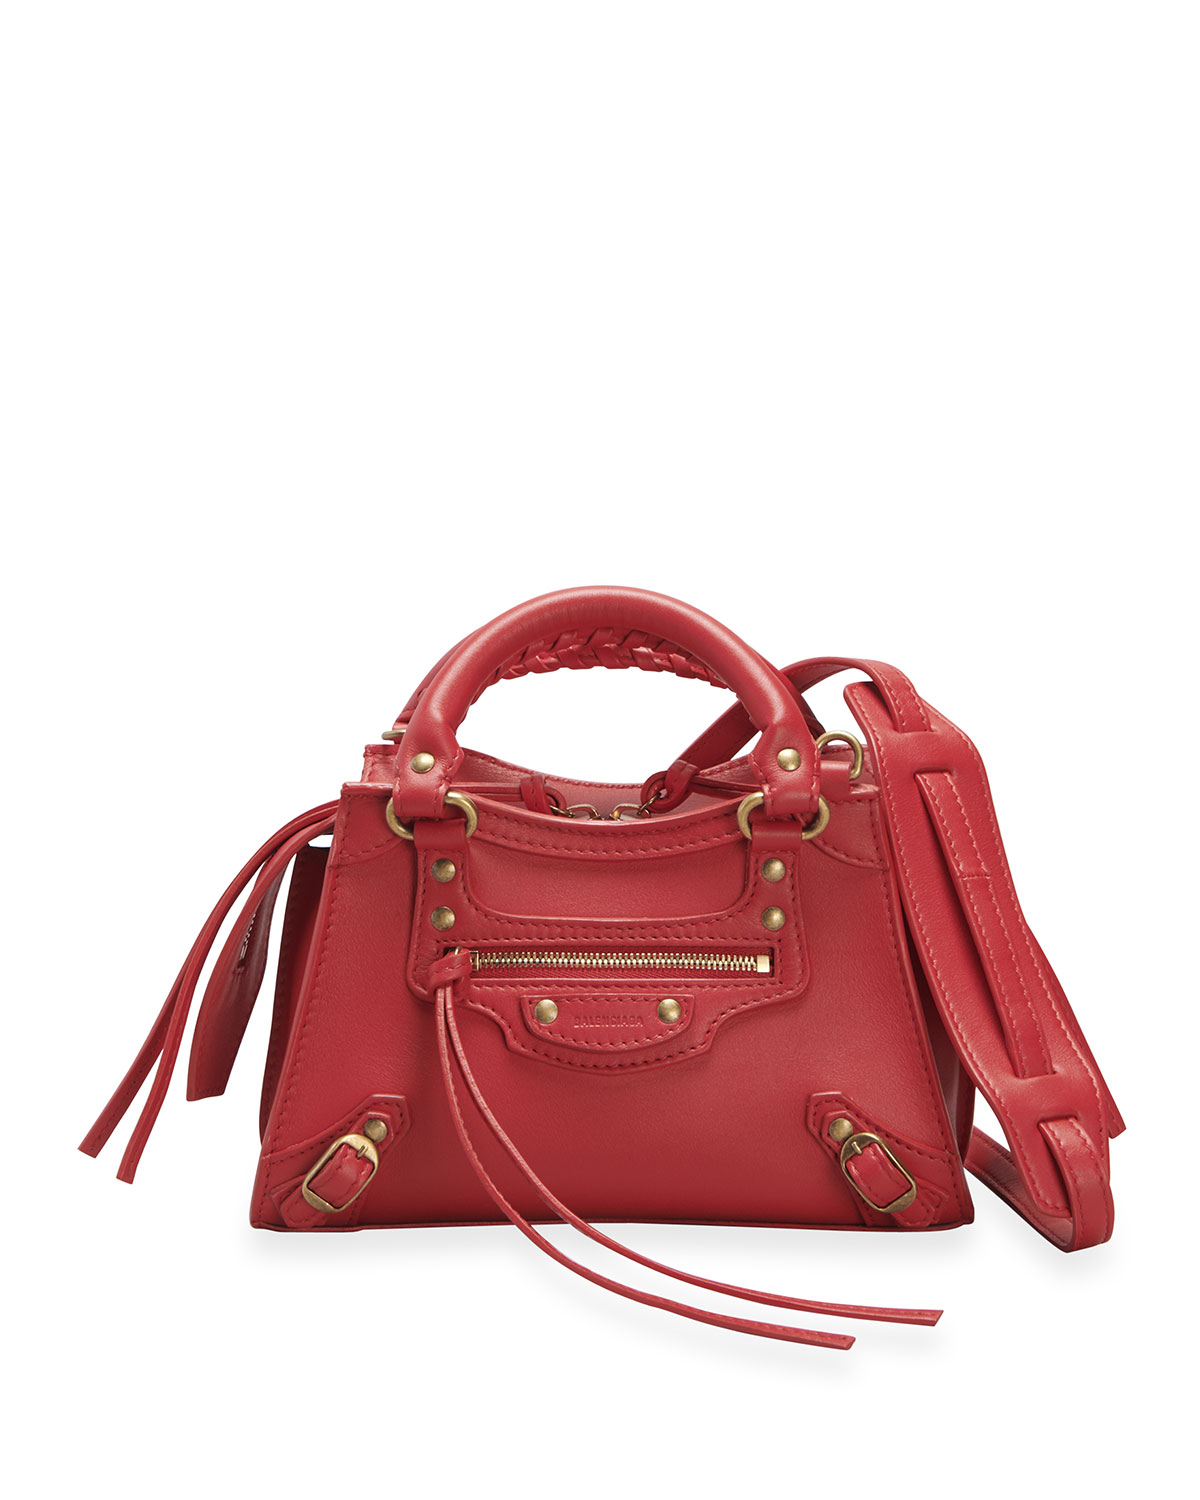 Balenciaga NEO CLASSIC CITY MINI CALFSKIN SATCHEL BAG